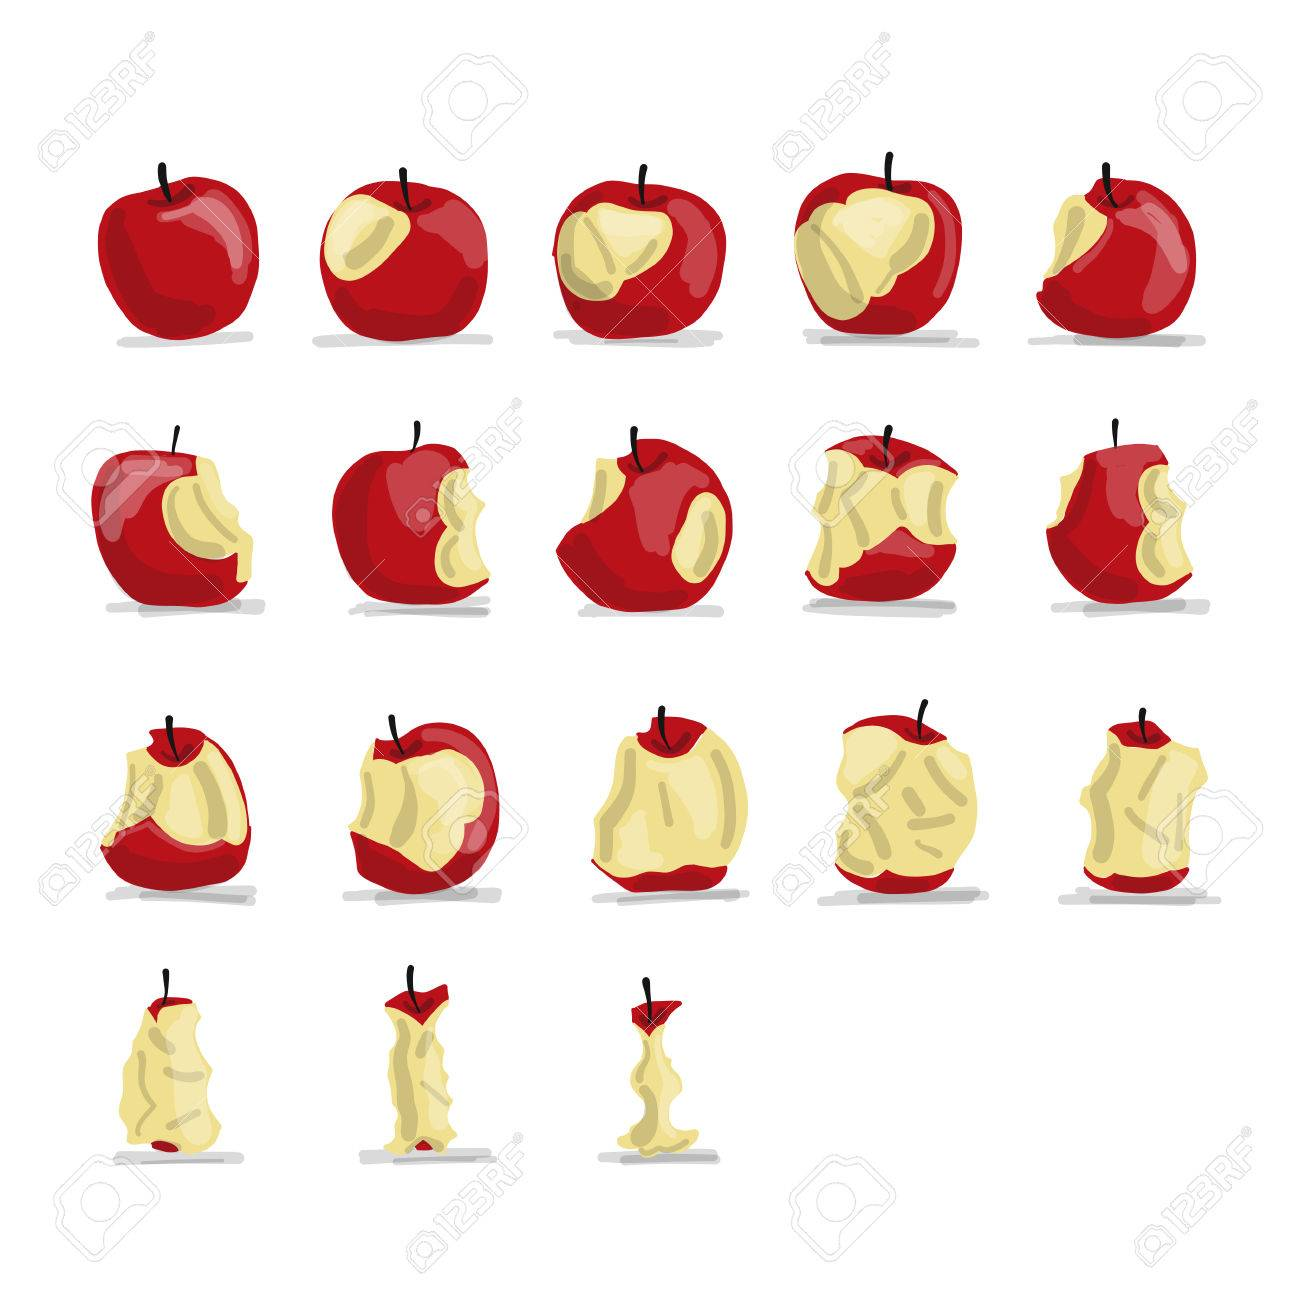 Stages Of Eating Apple Sketch For Your Design